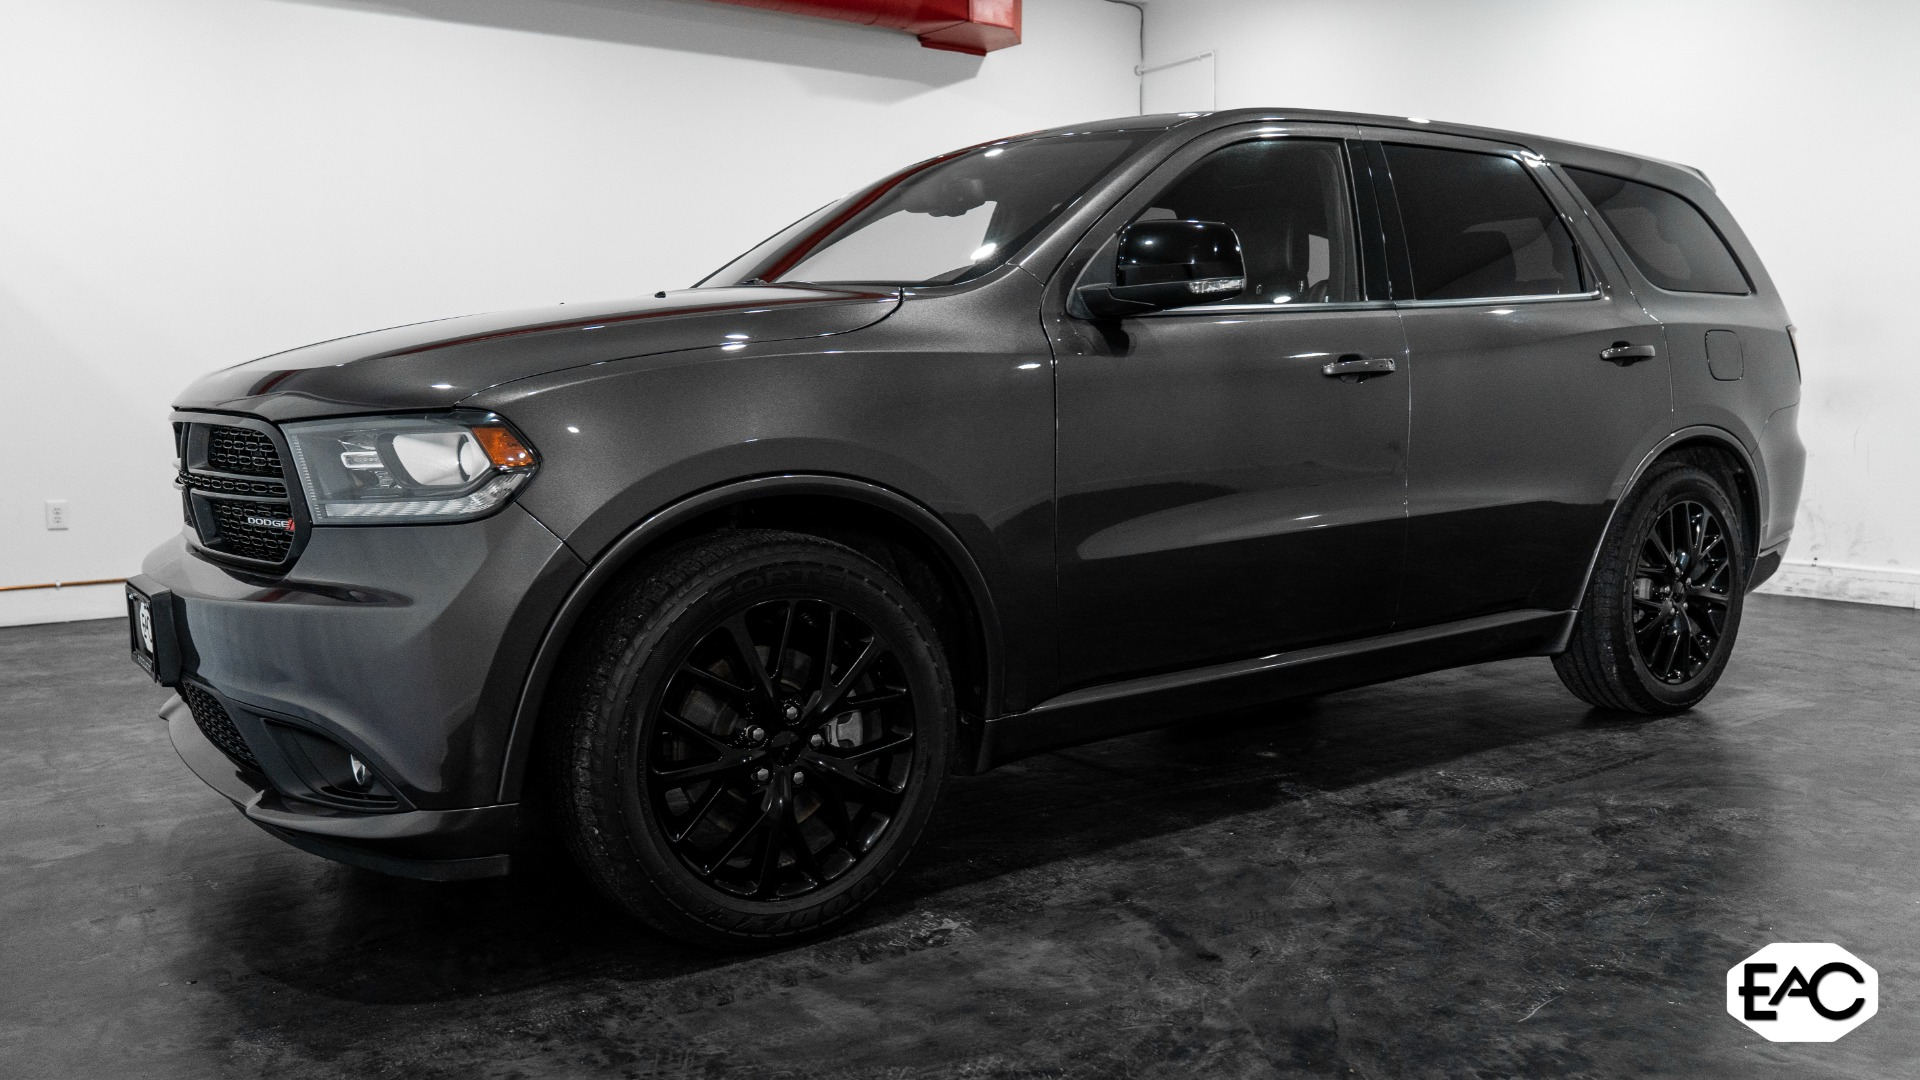 Used 2015 Dodge Durango R/T for sale Sold at Empire Auto Collection in Warren MI 48091 1